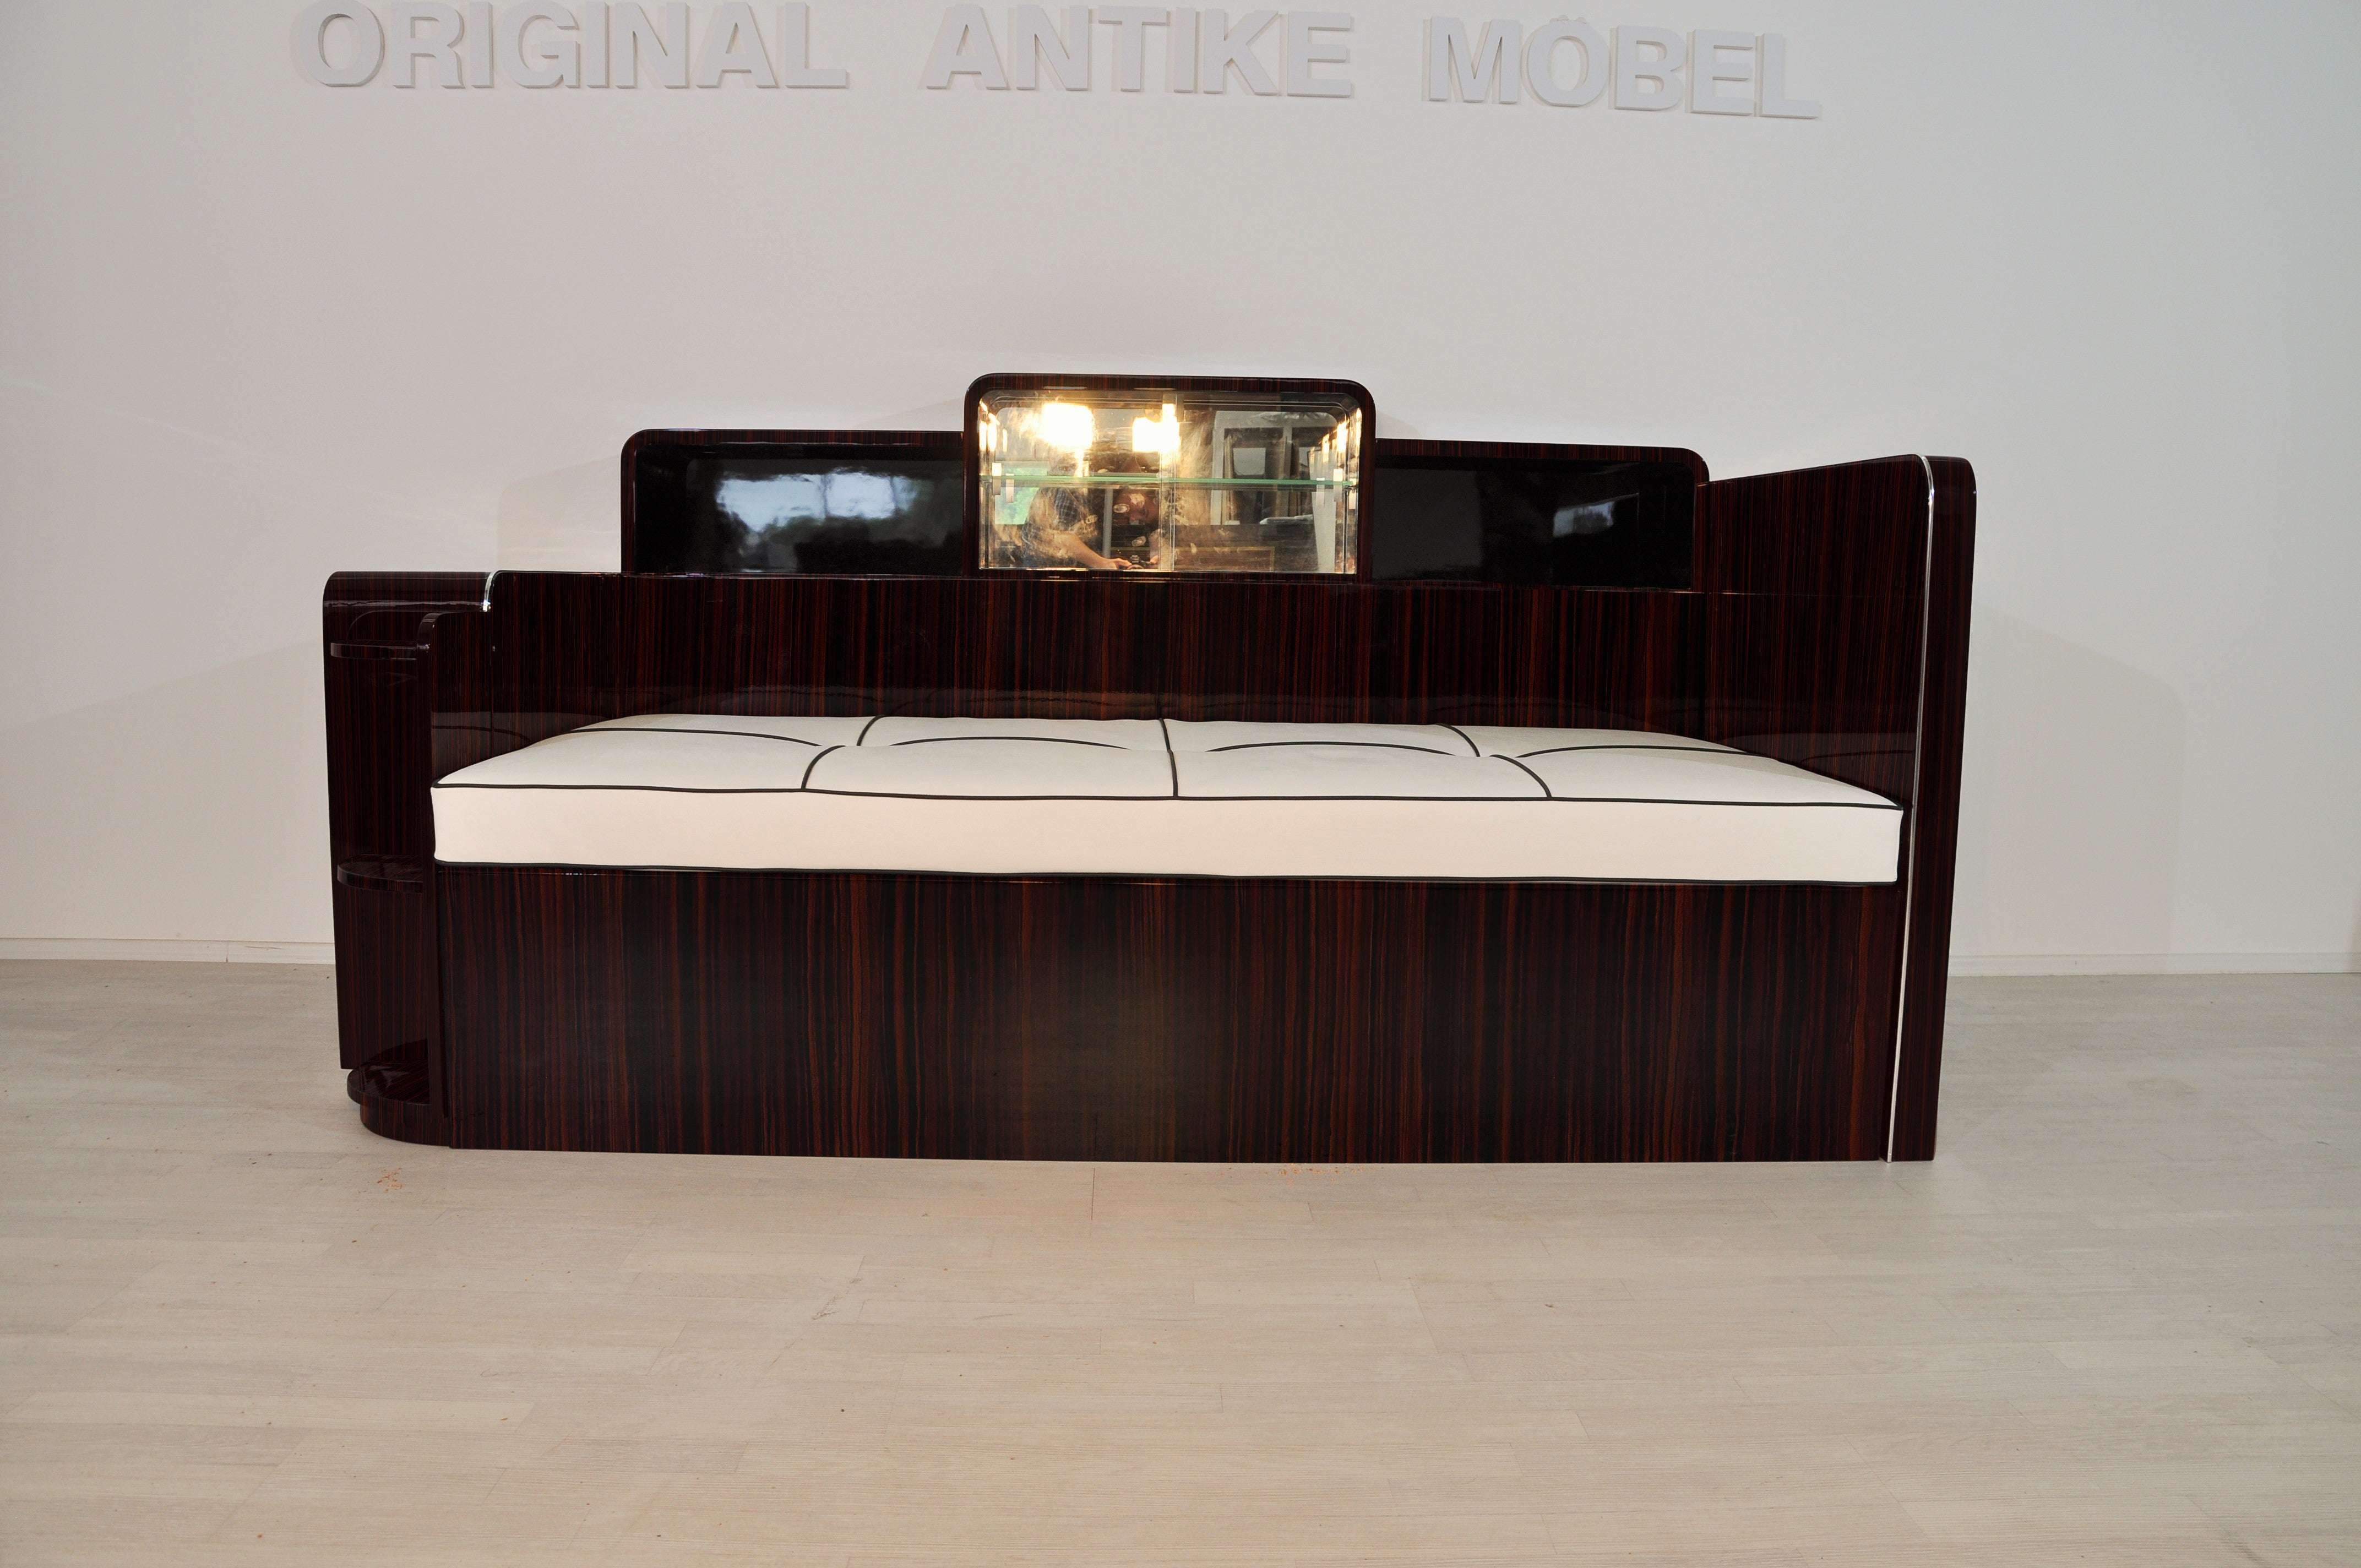 Antike Sofas Contemporary Art Deco Macassar Daybed